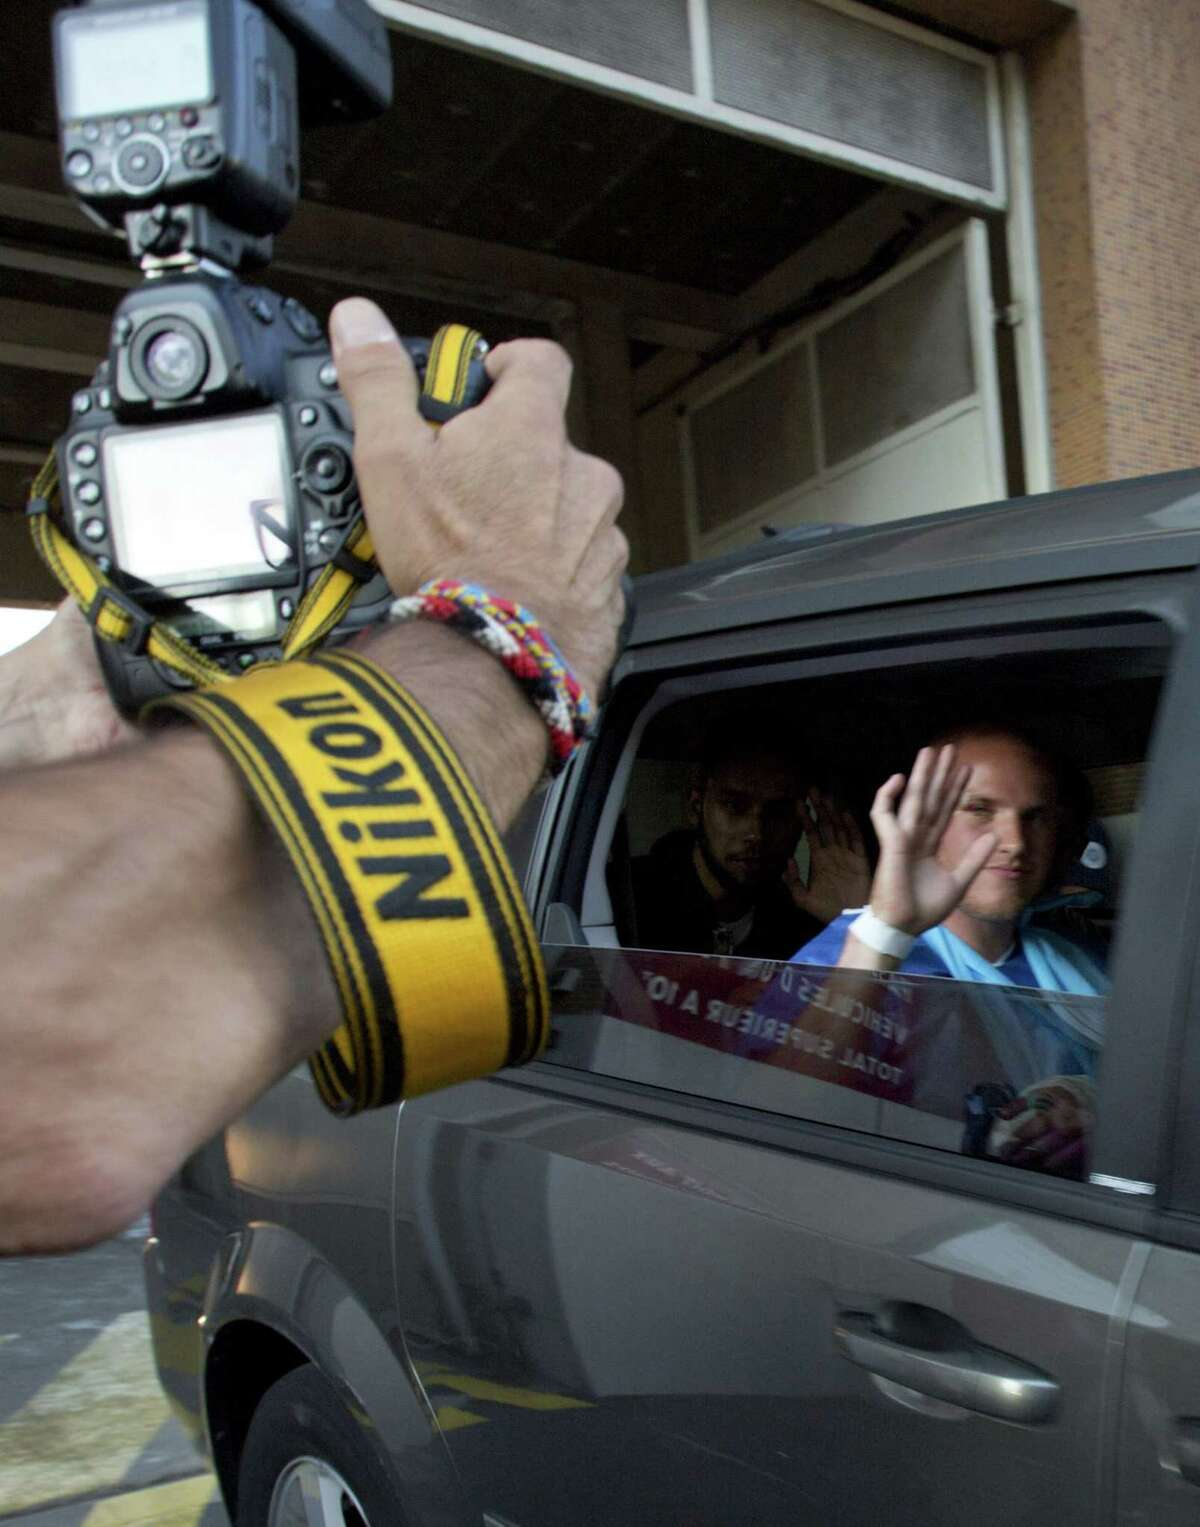 U.S. Airman Spencer Stone waves as he leaves the police station in Arras, northern France, Saturday, Aug. 22, 2015. A gunman prepared to open fire with an automatic weapon on a high-speed train traveling from Amsterdam to Paris Friday, wounding several people before being subdued by passengers, officials said. Spencer Stone is one of the passengers credited with subduing the gunman.